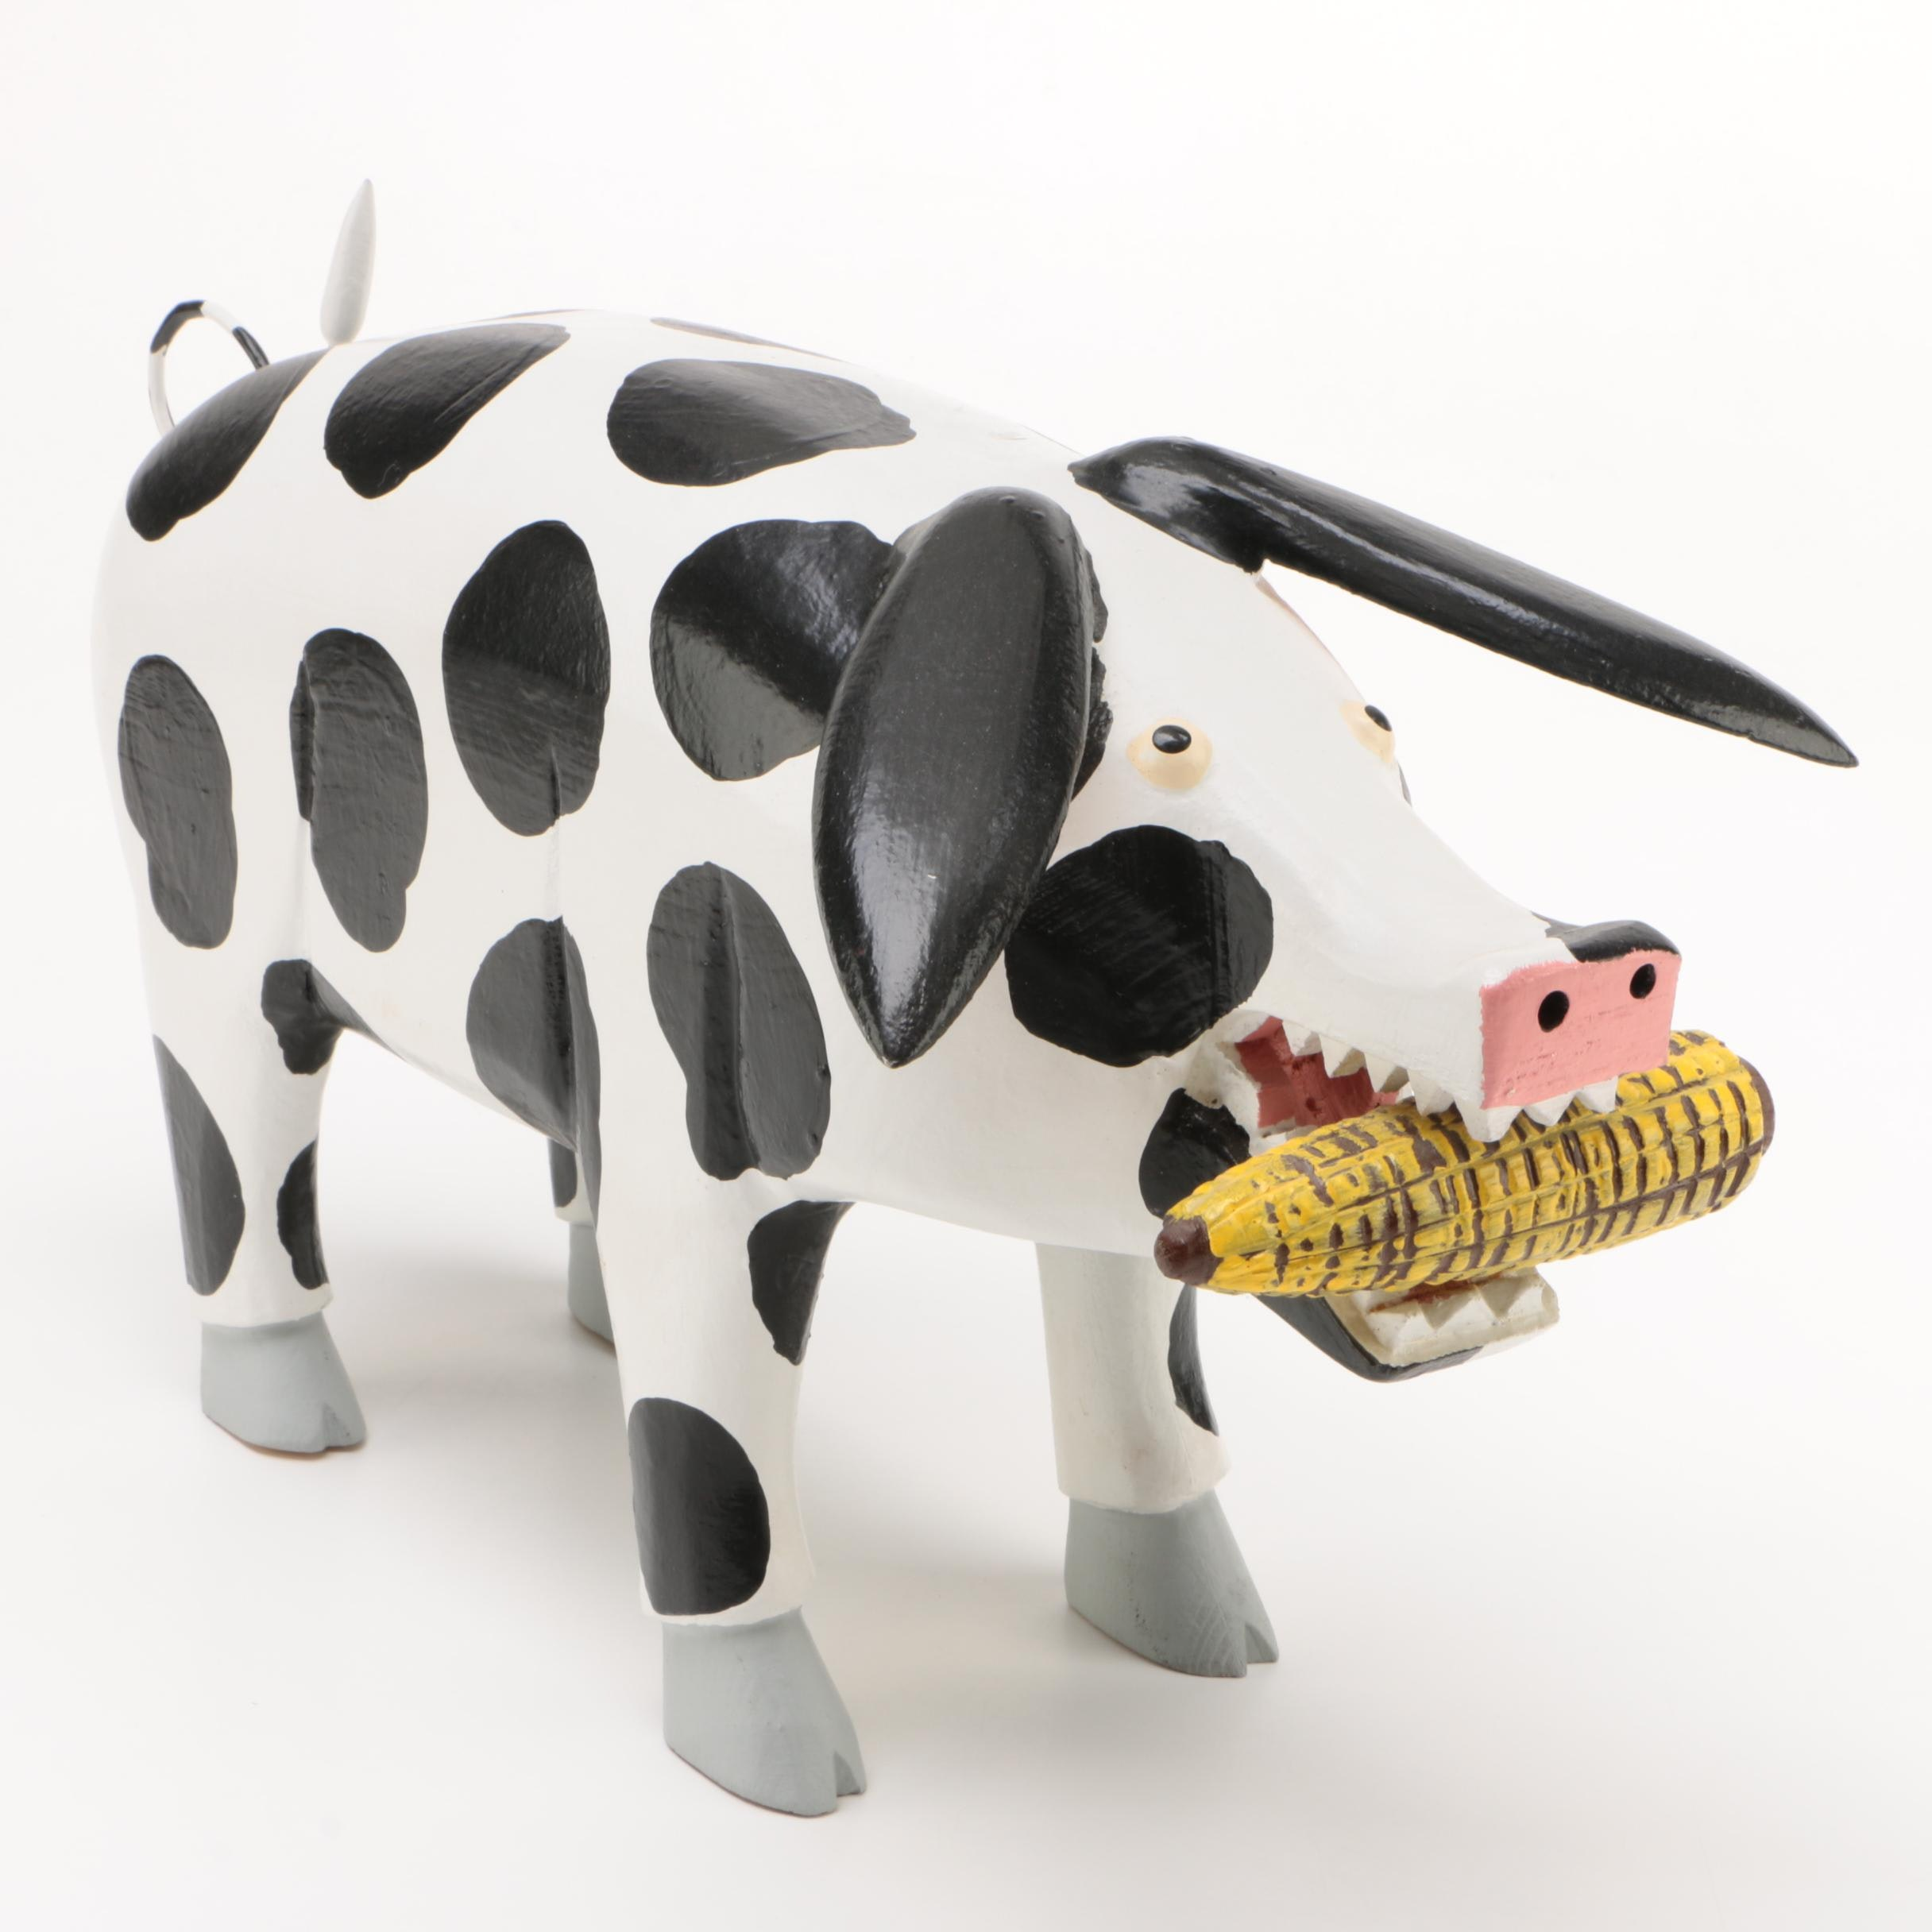 Signed Artisan Crafted Hand-Painted Wooden Folk Art Spotted Pig